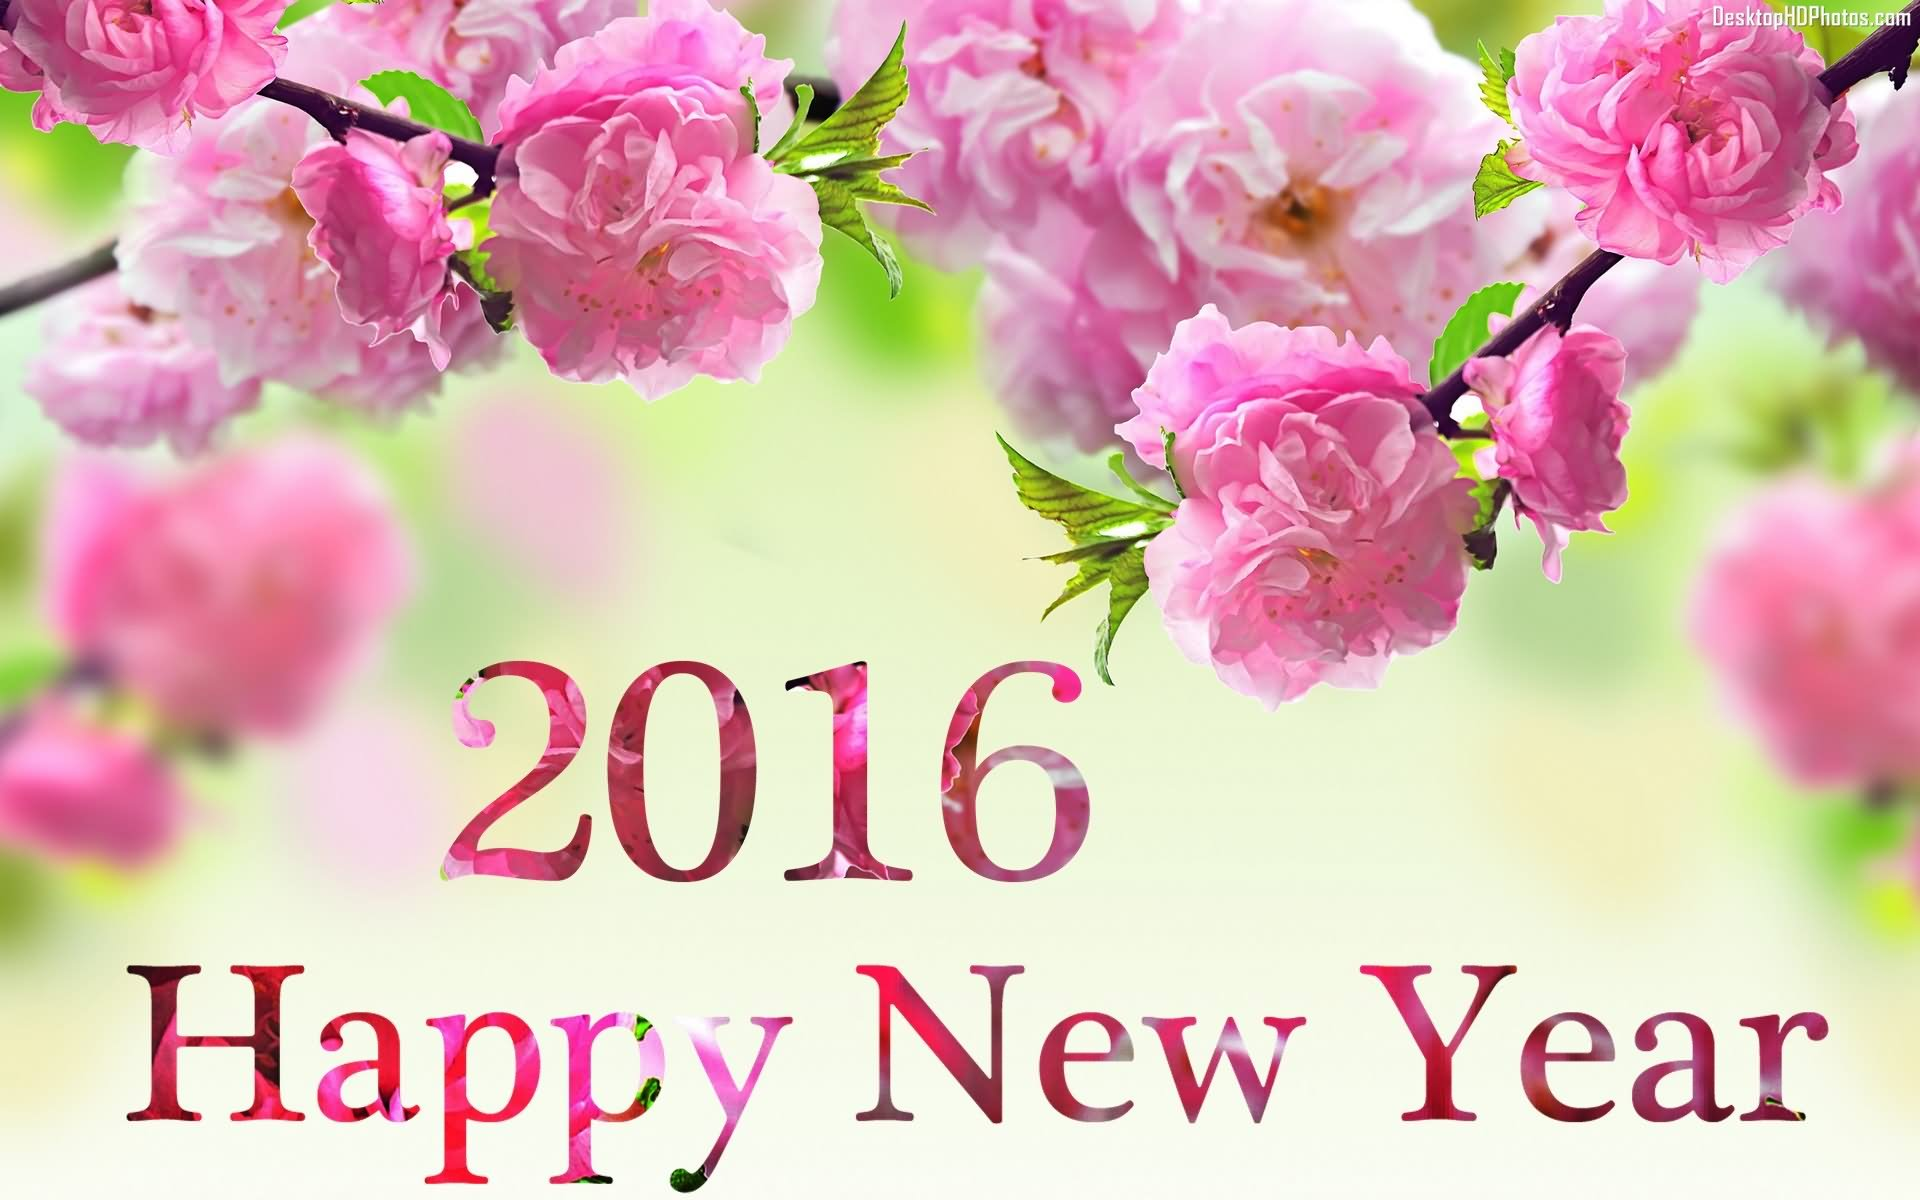 2016 happy new year flowers picture